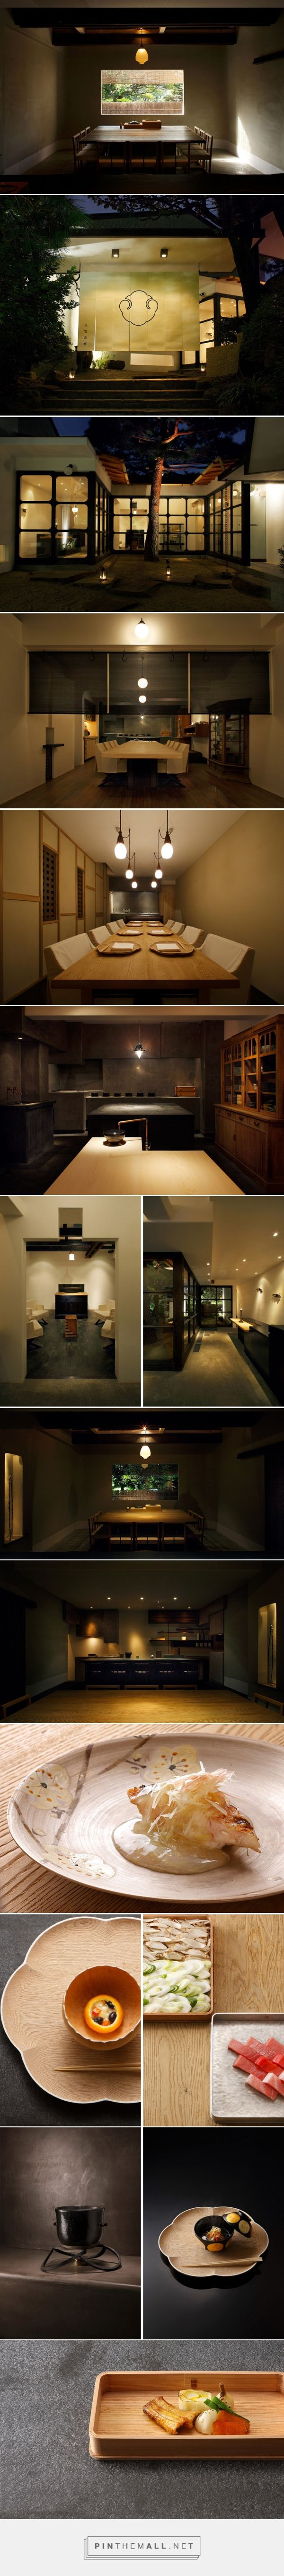 shinichiro ogata's restaurant is a humble refuge for fine japanese dining - created via http://pinthemall.net